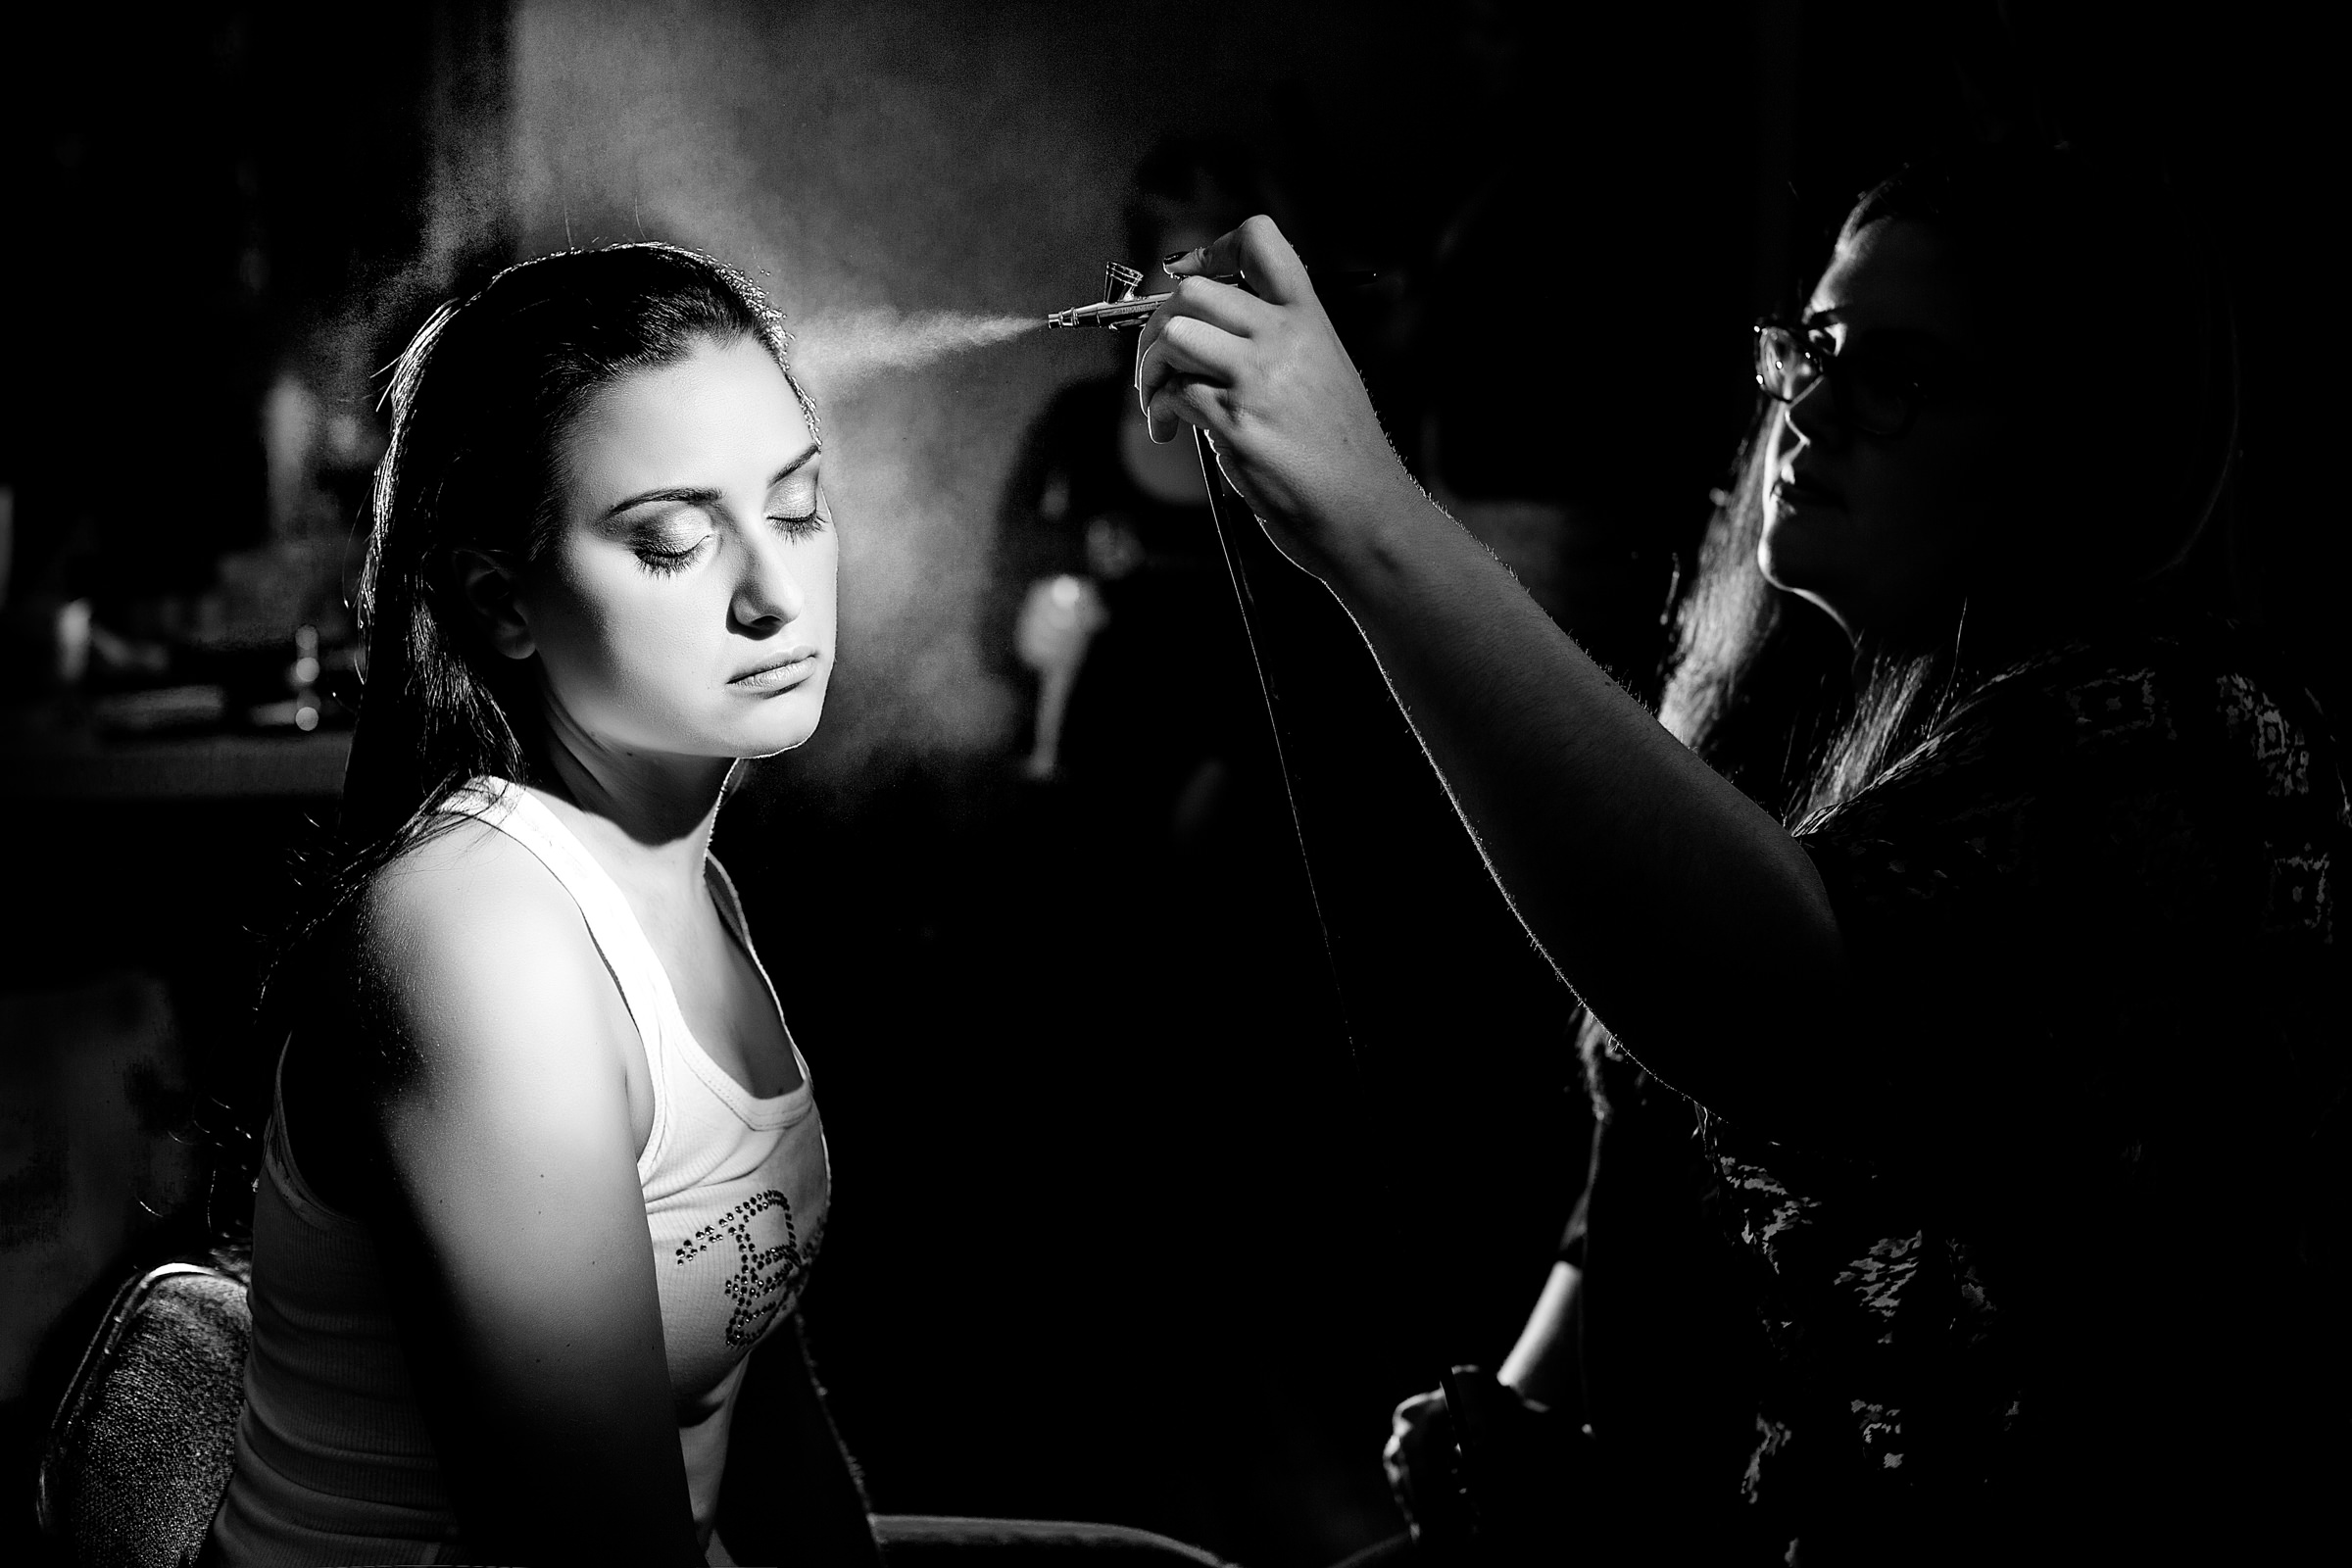 Makeup artist applies hairspray to bride in pin light - photo by Procopio Photography